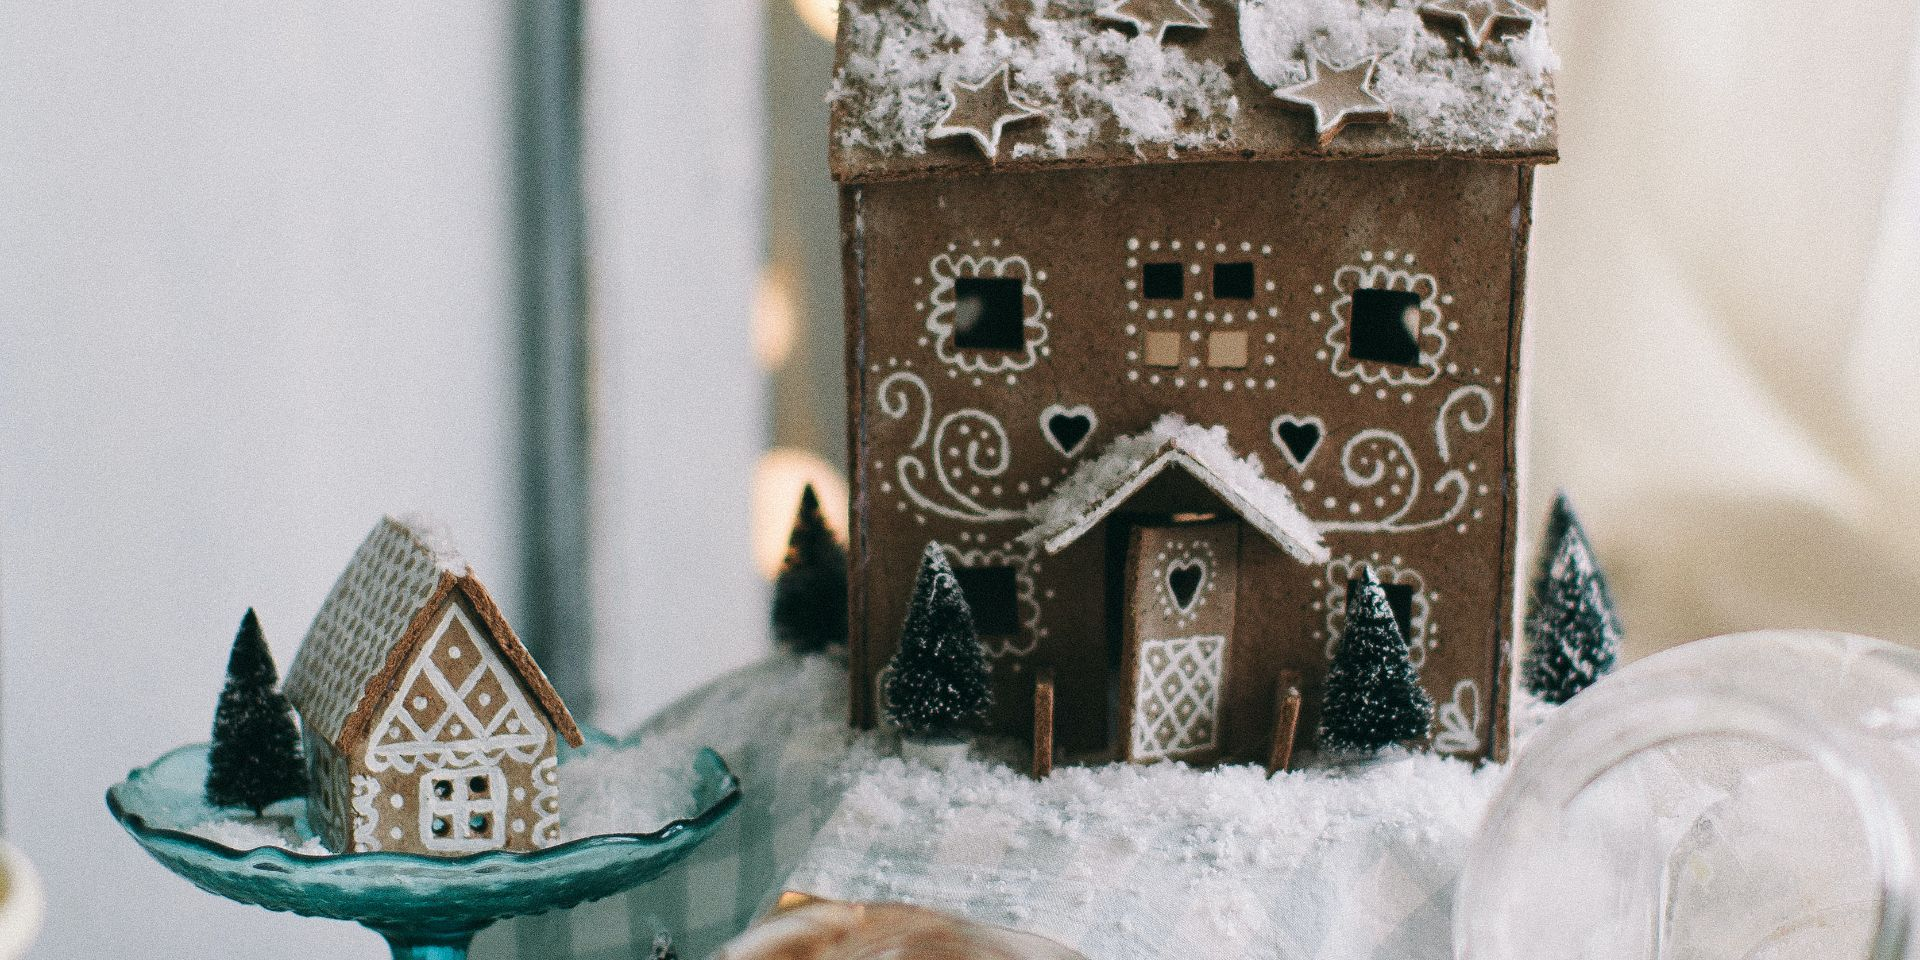 Gingerbread house with decorations